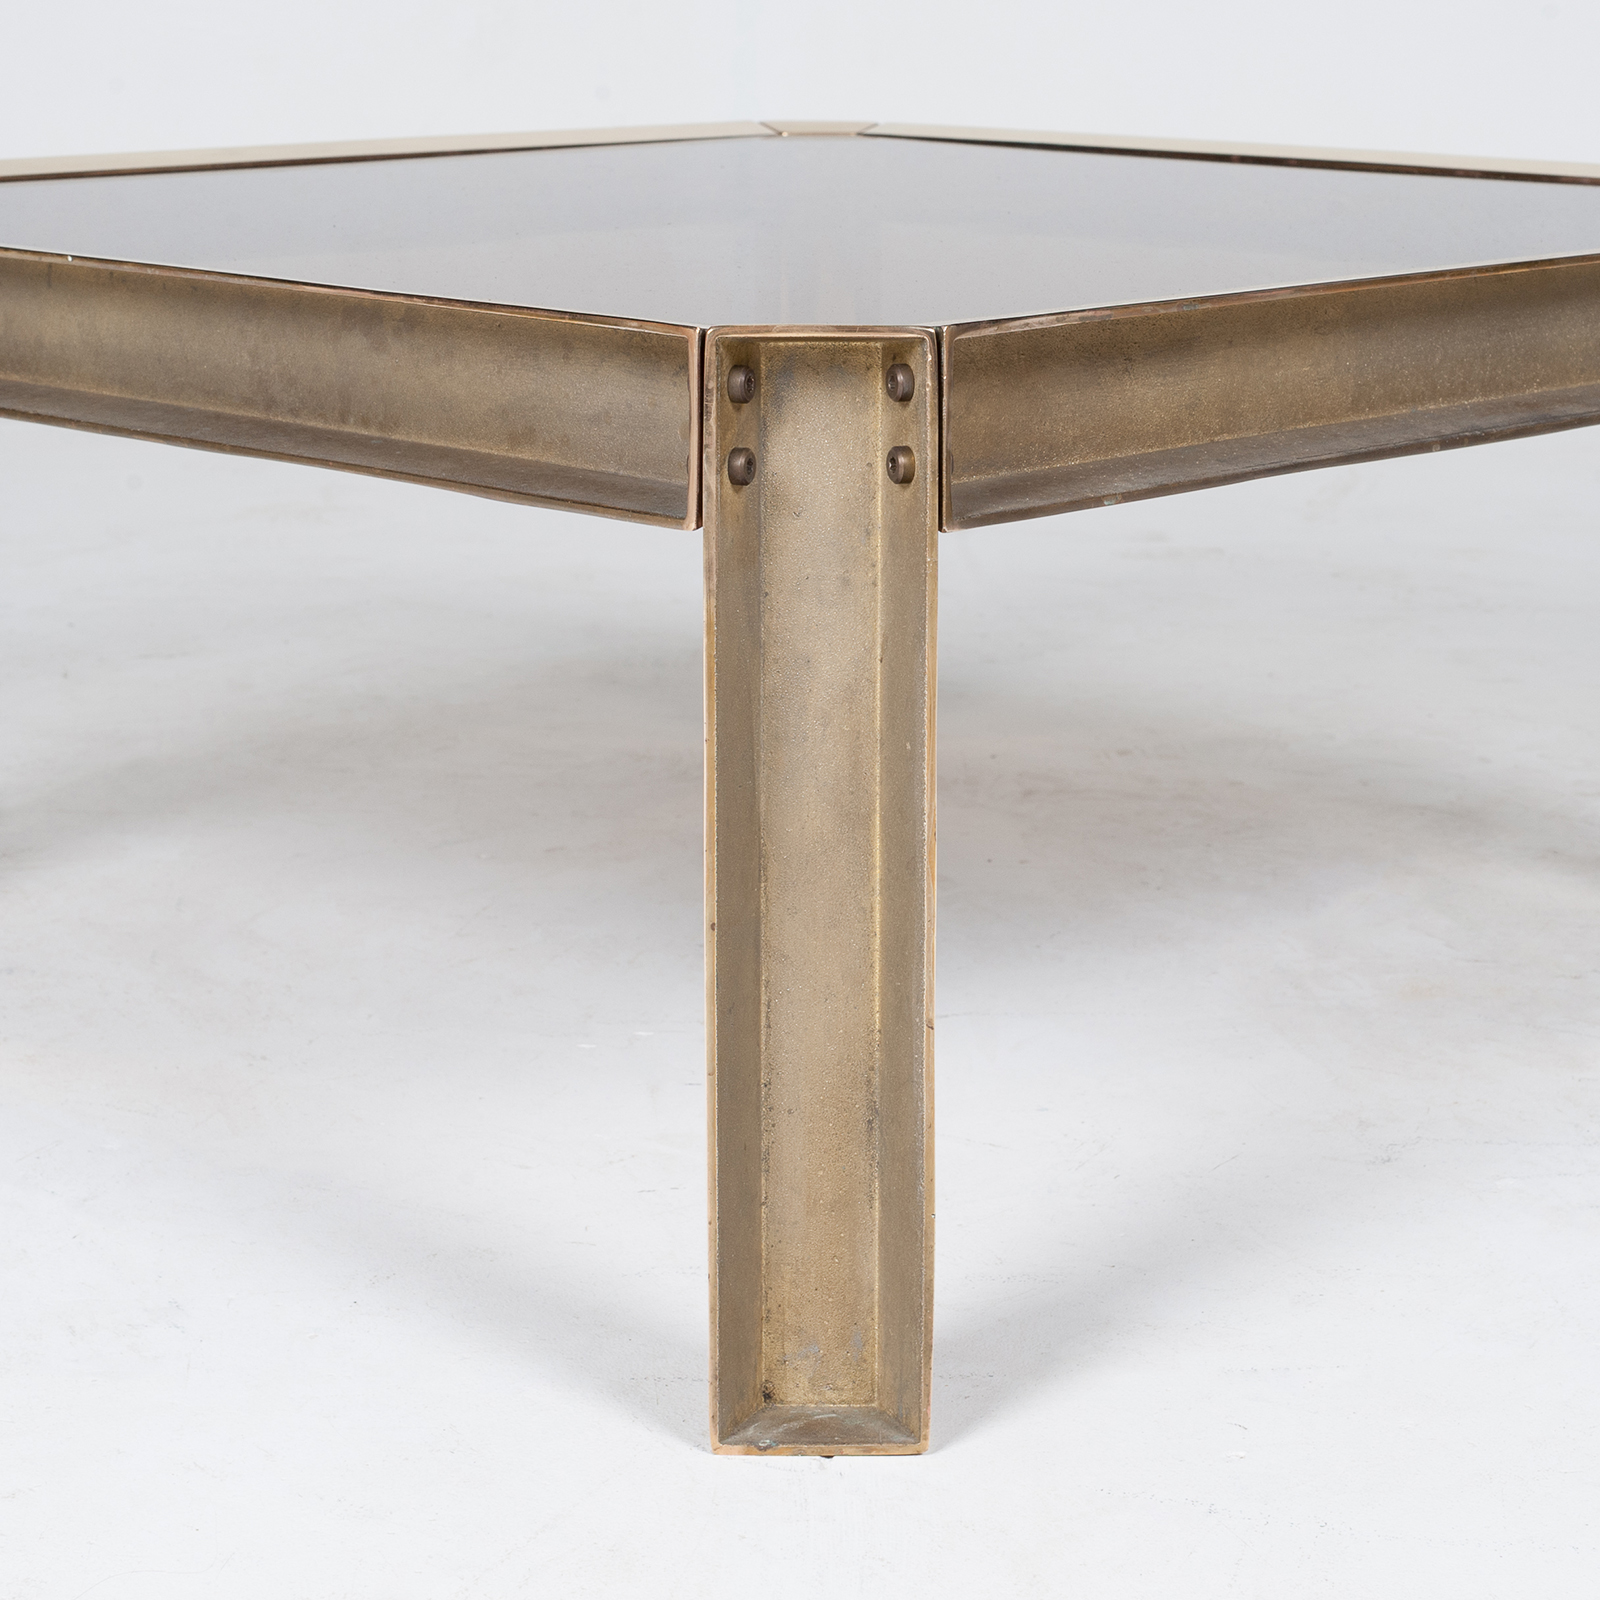 Side Table By Peter Ghyczy With Hollow Cast Brass Frame And Smoked Glass Top, 1970s, The Netherlands 30